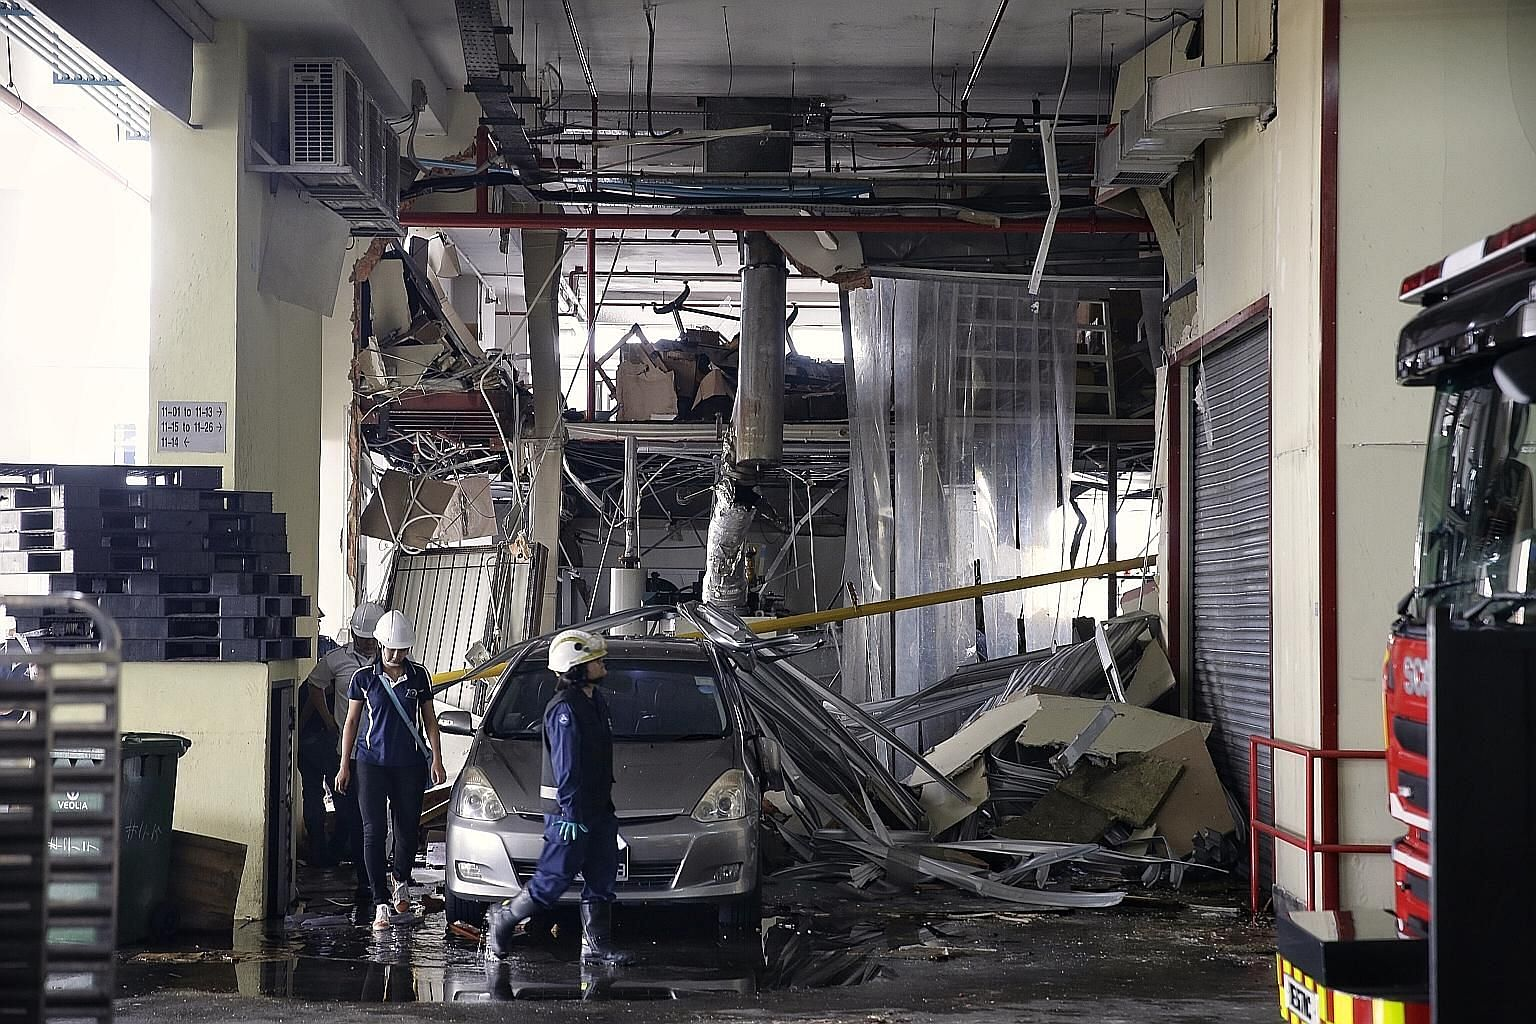 A Singapore Civil Defence Force officer and Manpower Ministry staff surveying the damage caused by an explosion at an 11th-floor unit at Enterprise Centre in Bukit Batok Crescent. Windows were shattered and frames left dangling after the blast, but t